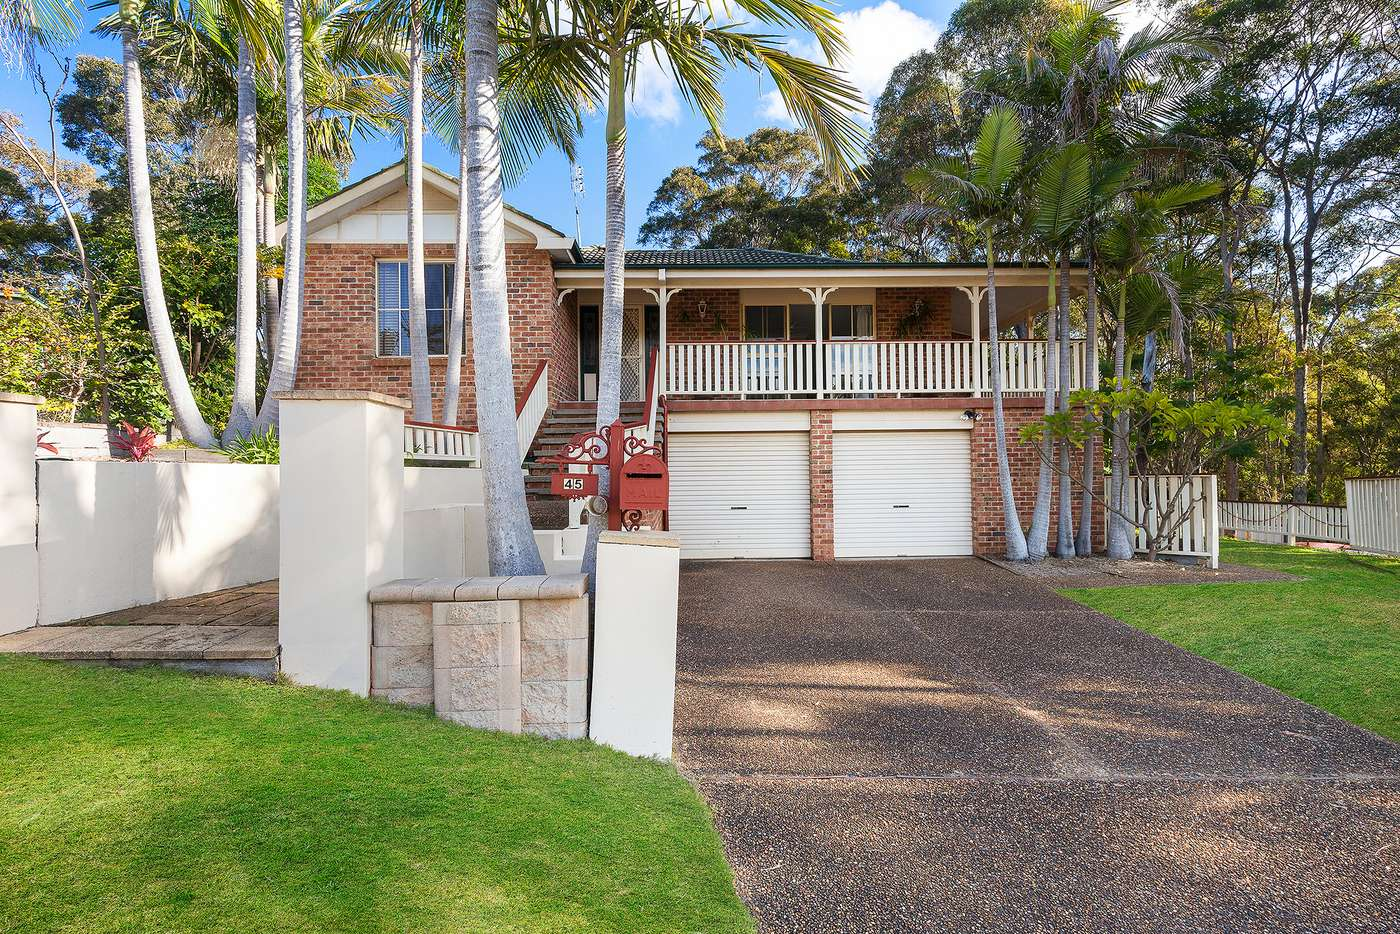 Main view of Homely house listing, 45 Spinnaker Ridge Way, Belmont NSW 2280